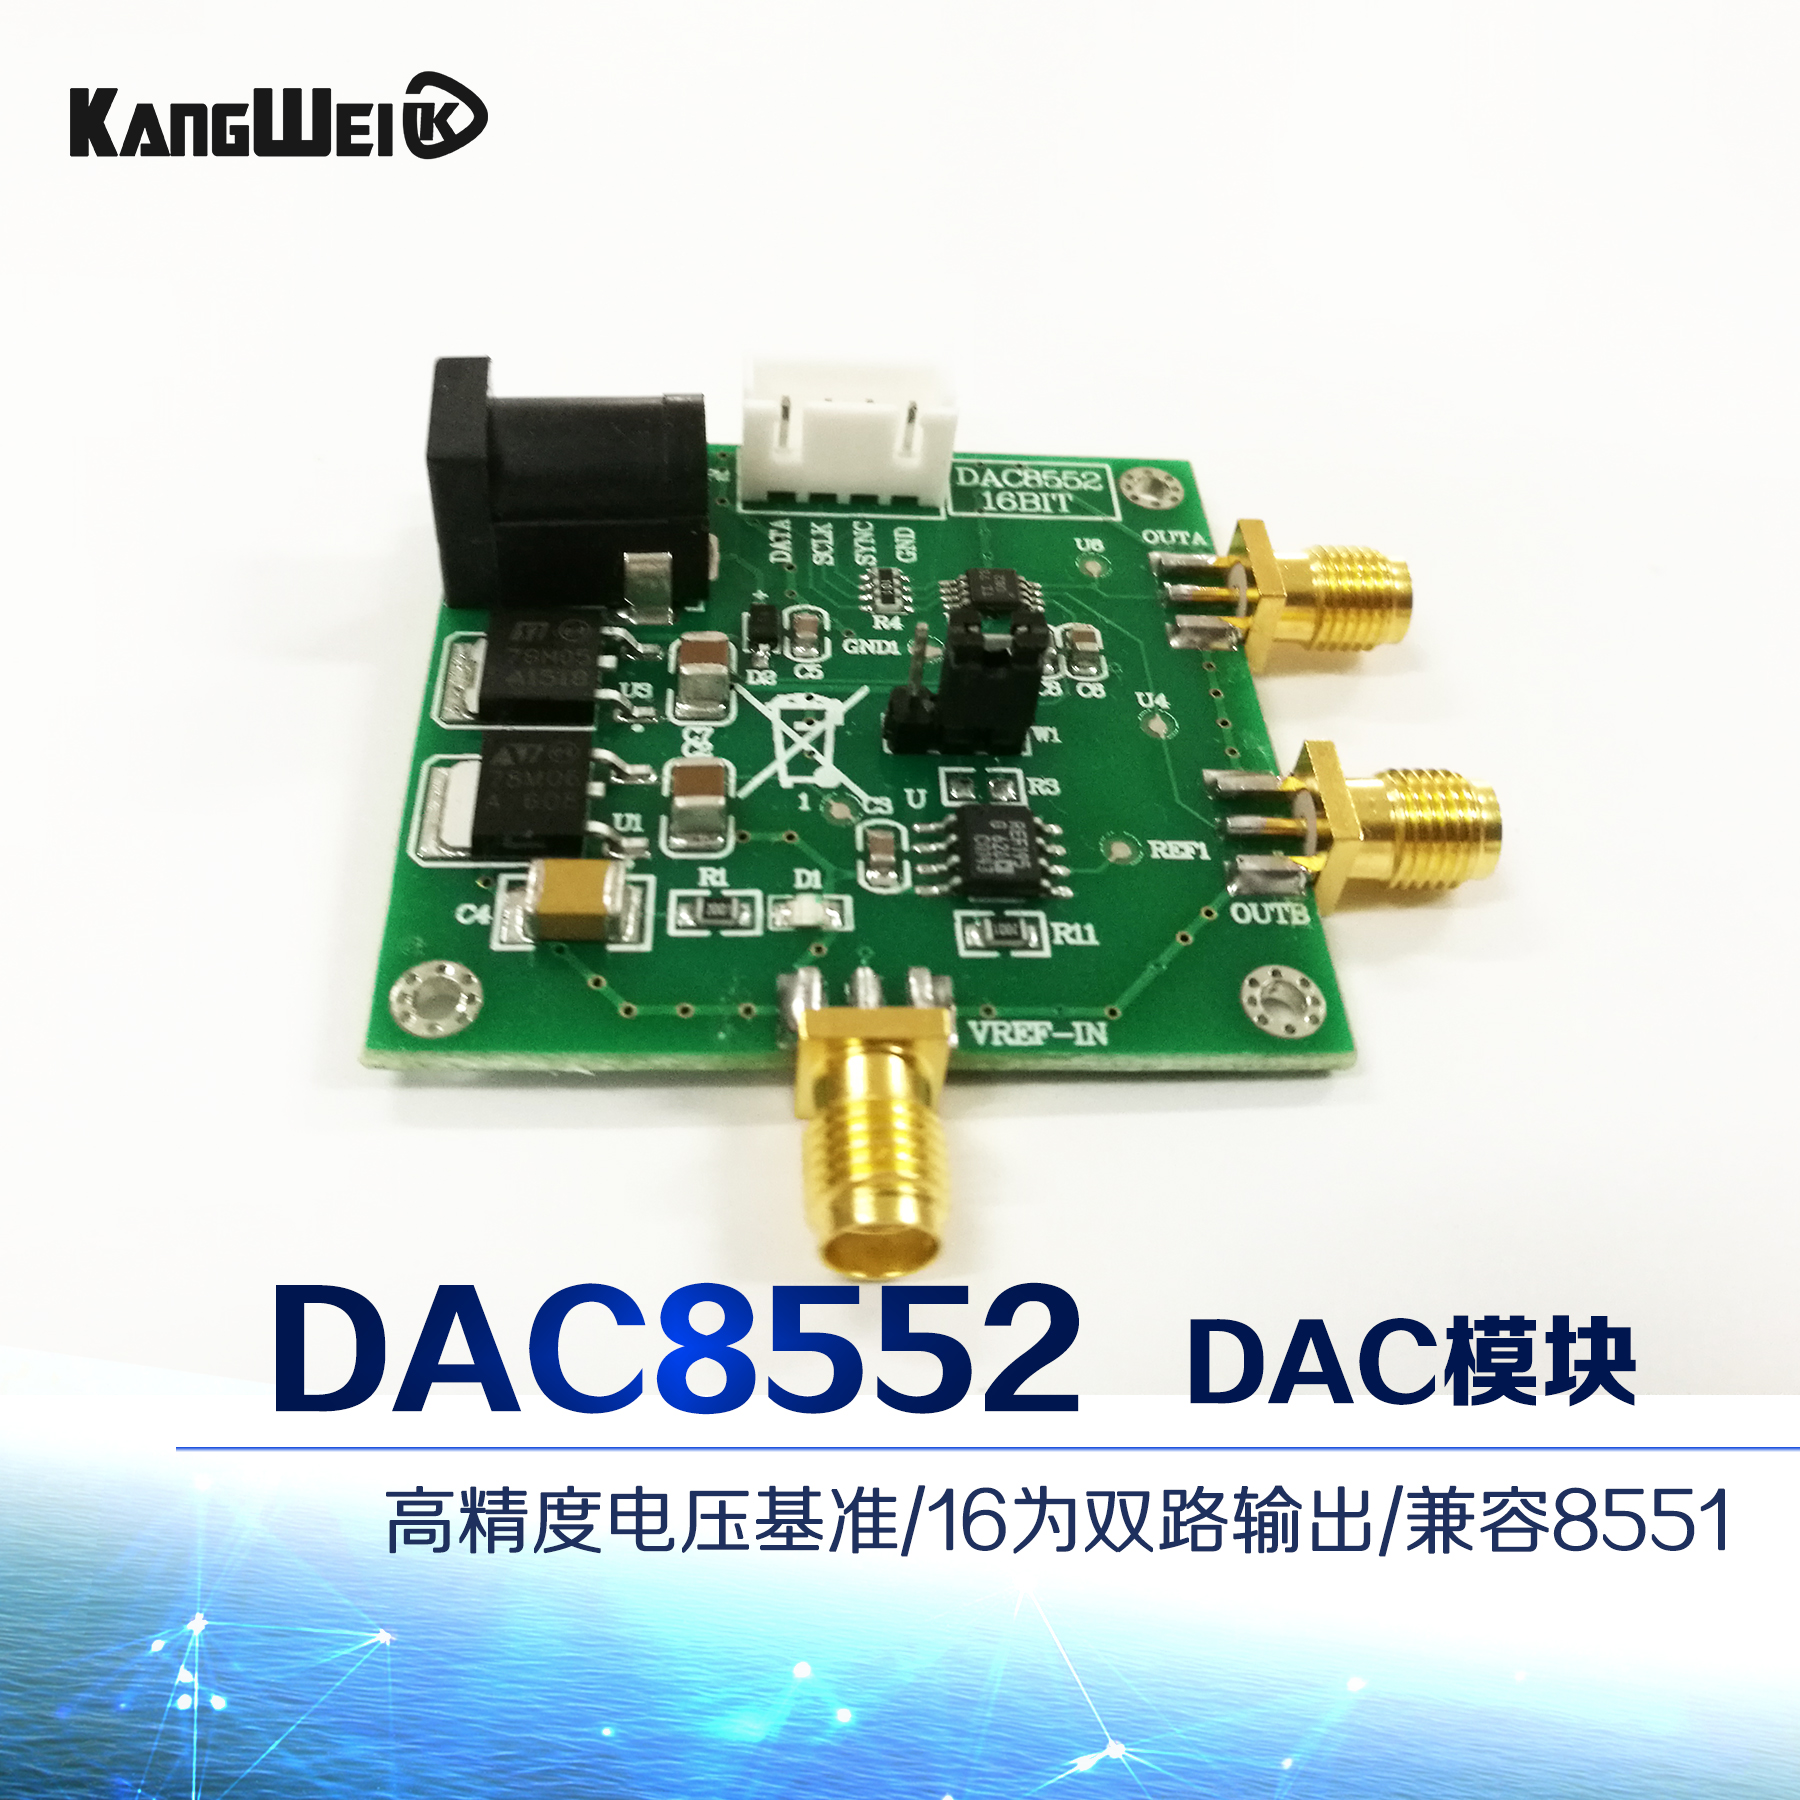 DAC8552 Module 16 Bit Dual Voltage Output DAC DAC High Precision Voltage Reference Source corel wordperfect 9 0 quick source reference guide